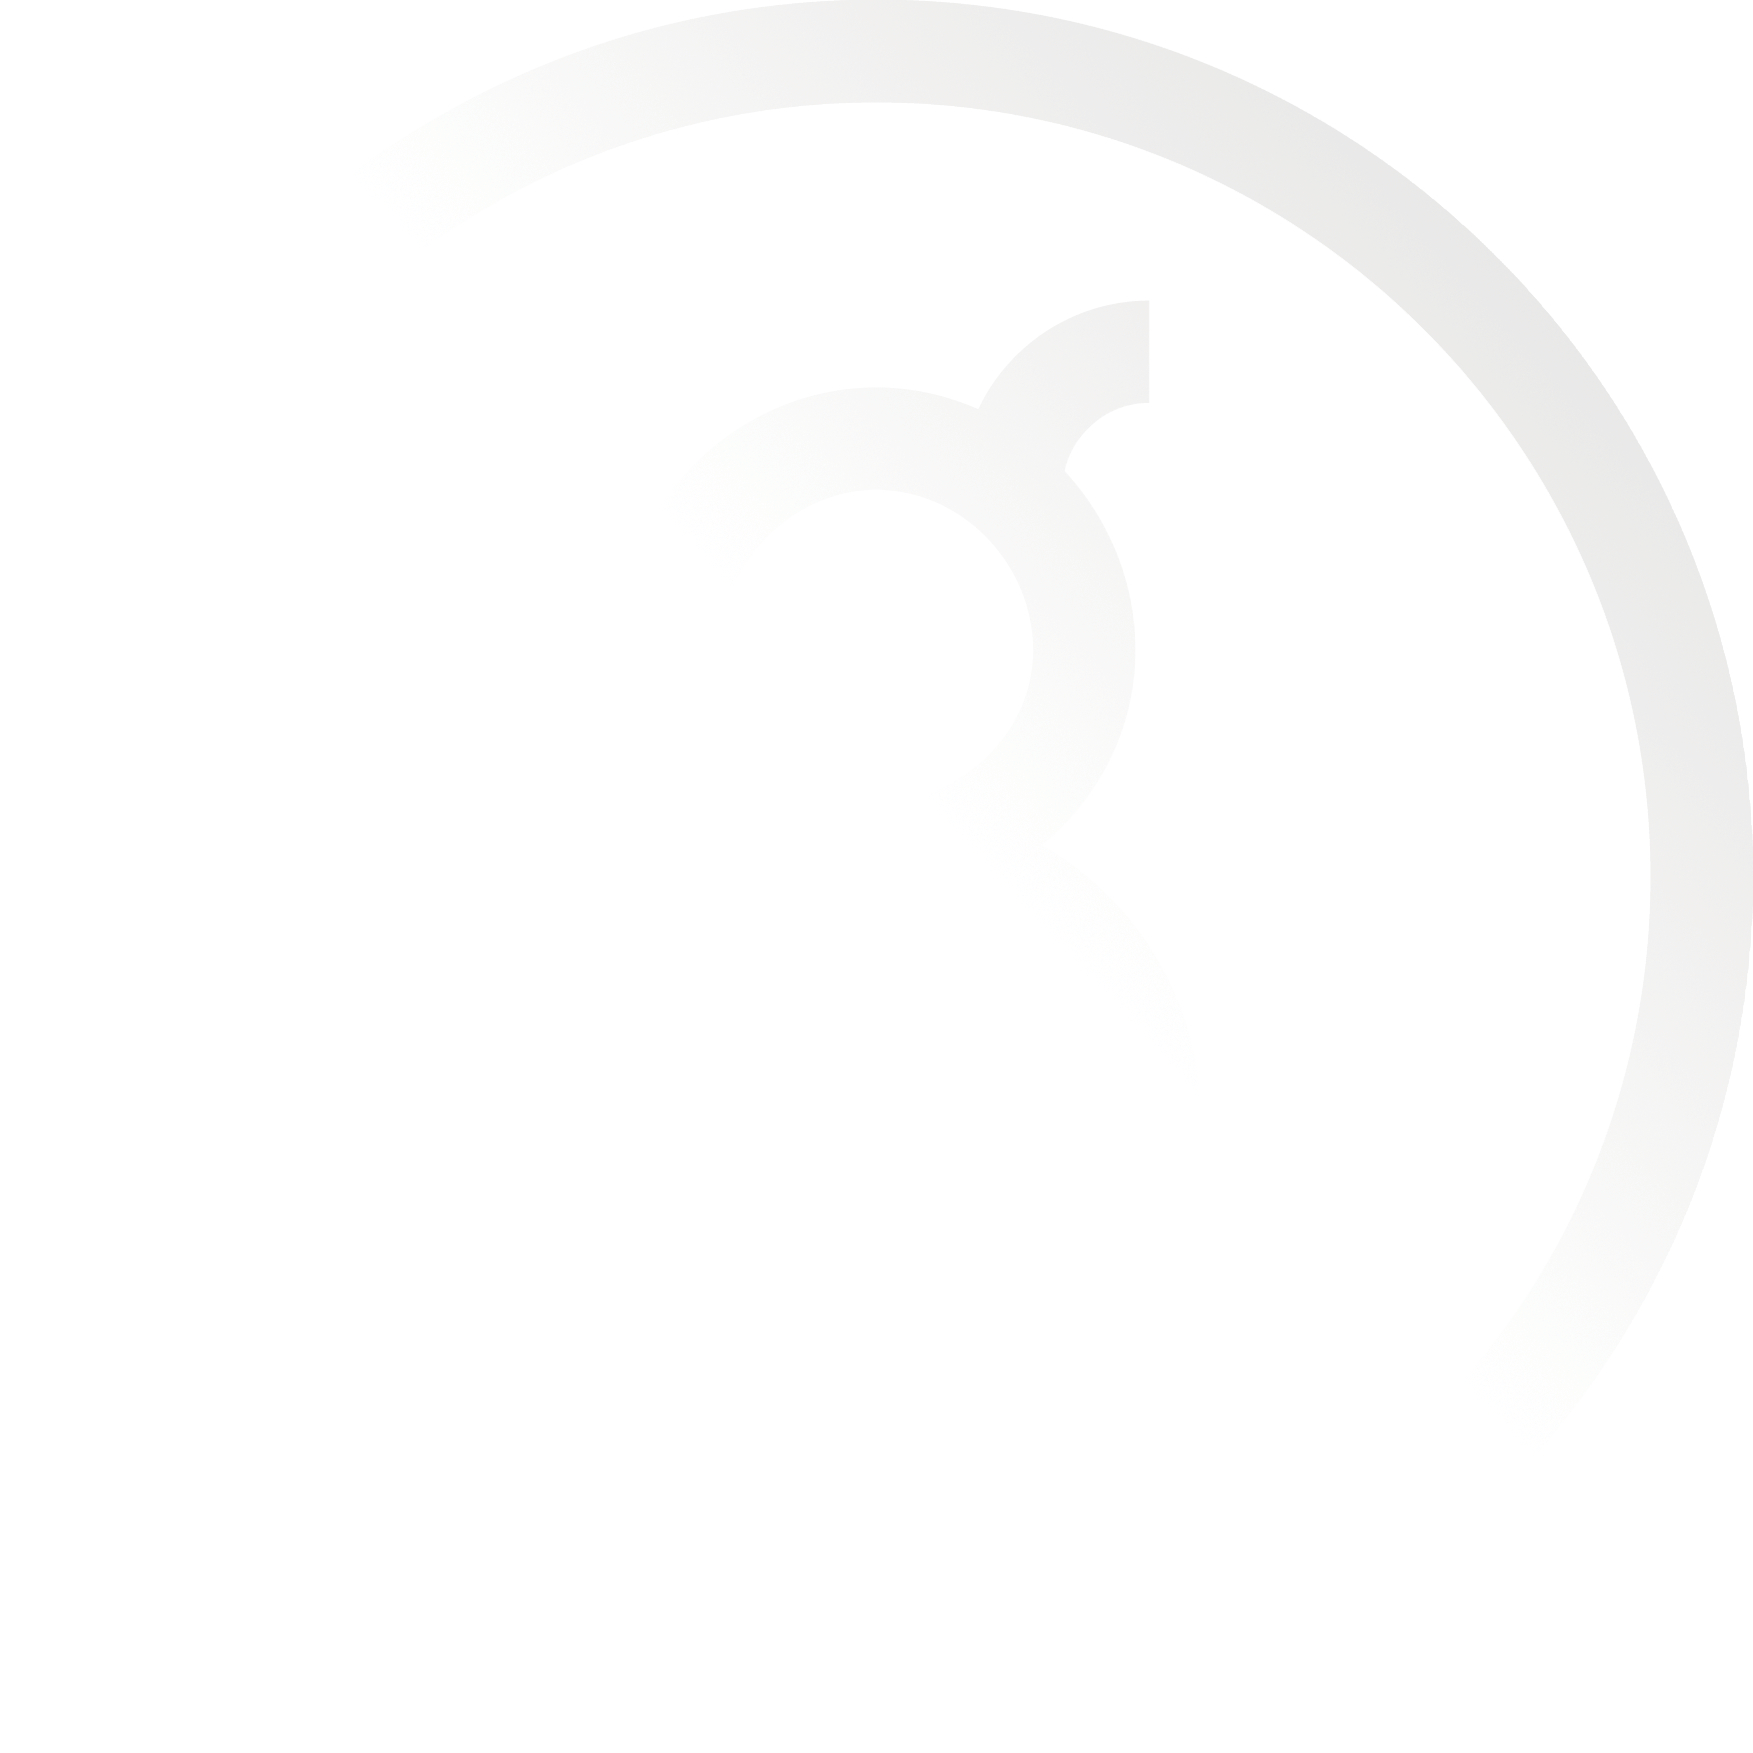 silent-g-logo-new.png